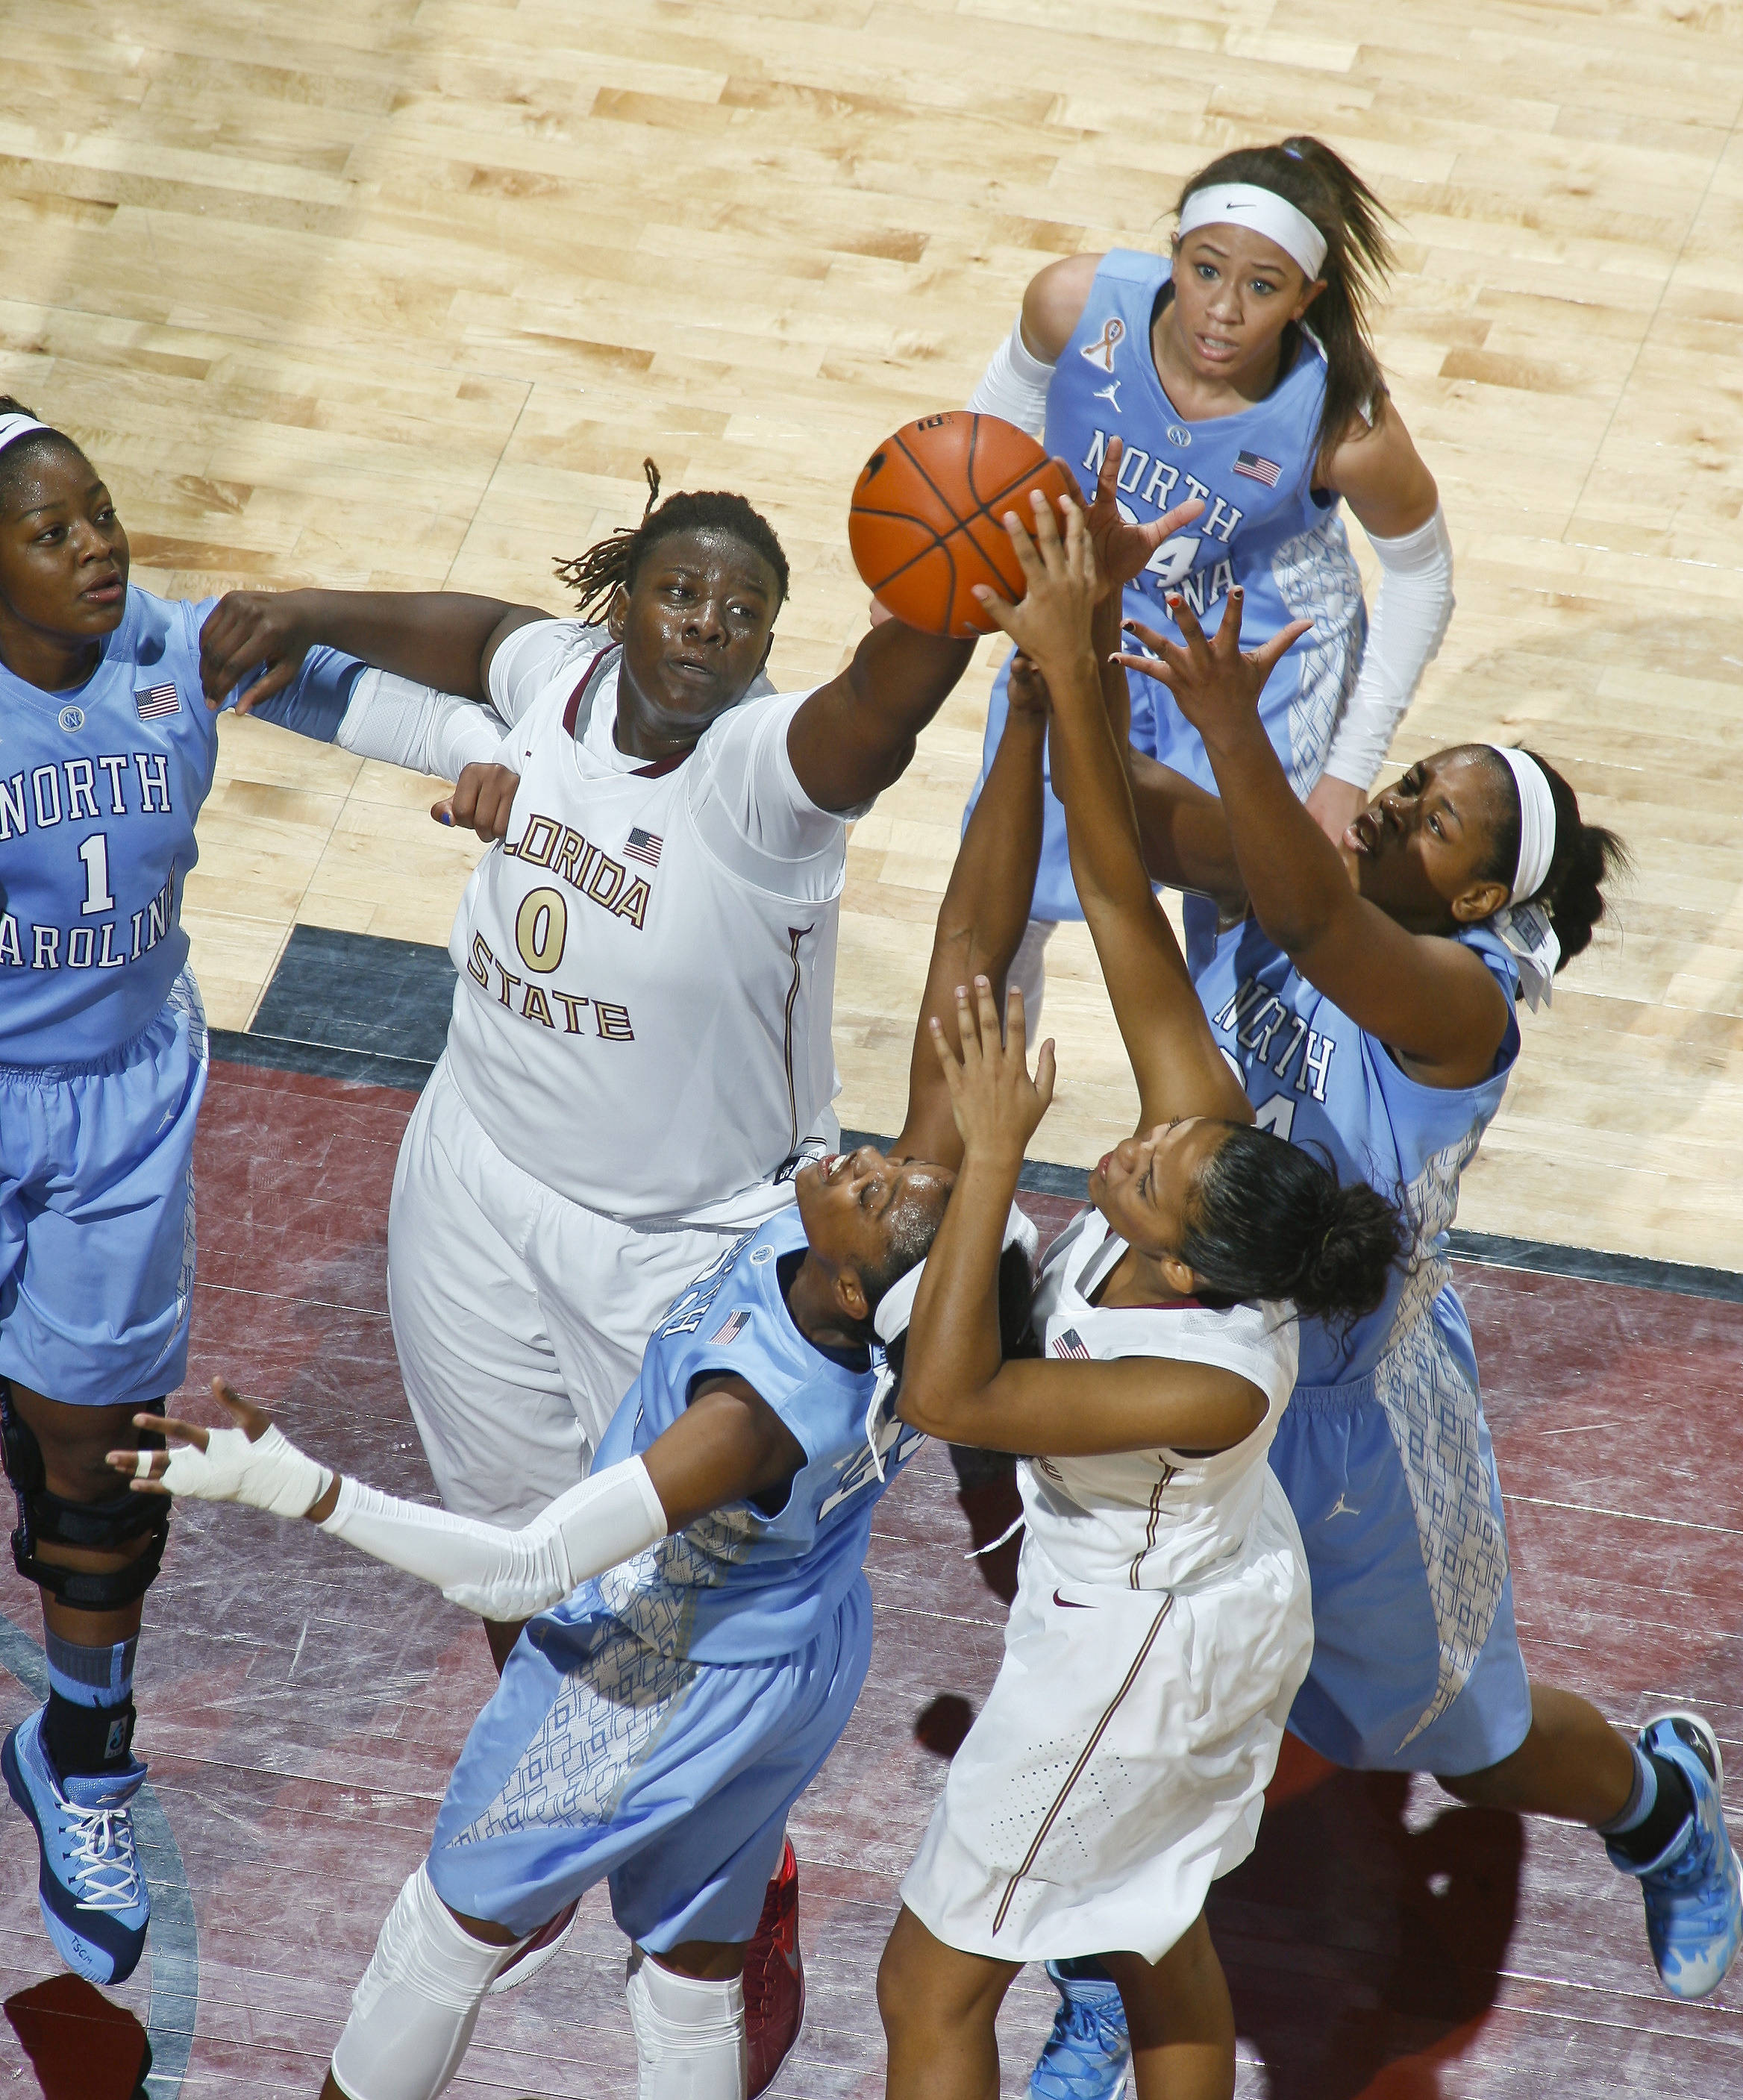 Jan 12, 2014; Tallahassee, FL, USA; Florida State Seminoles forward Kai James (0) and North Carolina Tar Heels guard Diamond DeShields (23) and Florida State Seminoles guard Emiah Bingley (3) and North Carolina Tar Heels forward Xylina McDaniel (34) go for a rebound in the first half at the Tucker Center. Mandatory Credit: Phil Sears-USA TODAY Sports